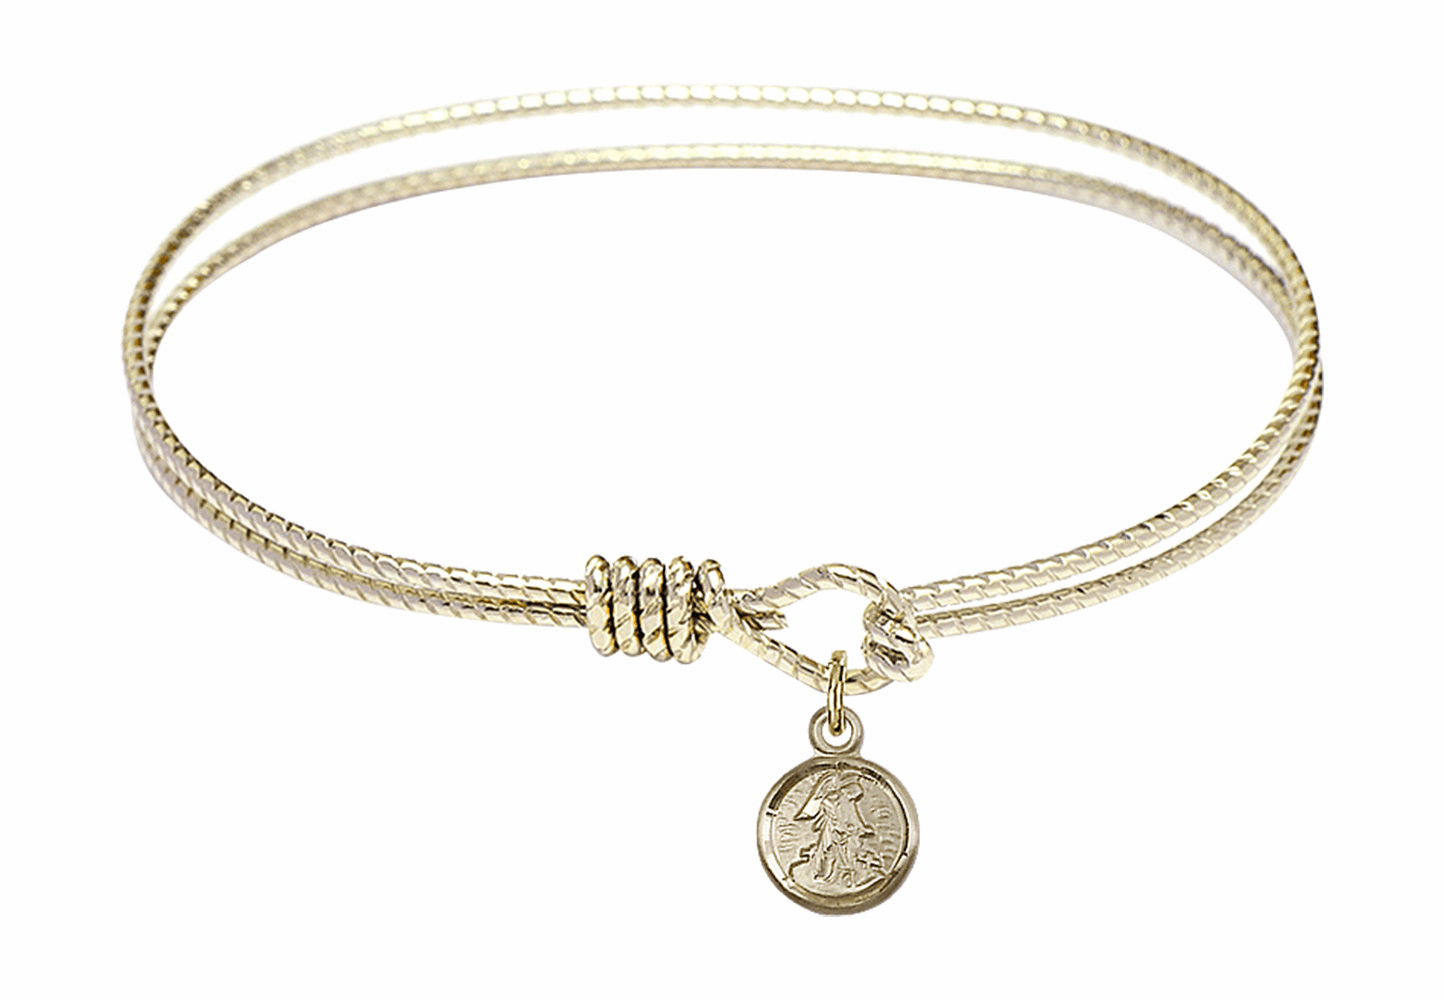 Round Twist Eye Hook Bangle Bracelet w/Small Guardian Angel Charm by Bliss Mfg